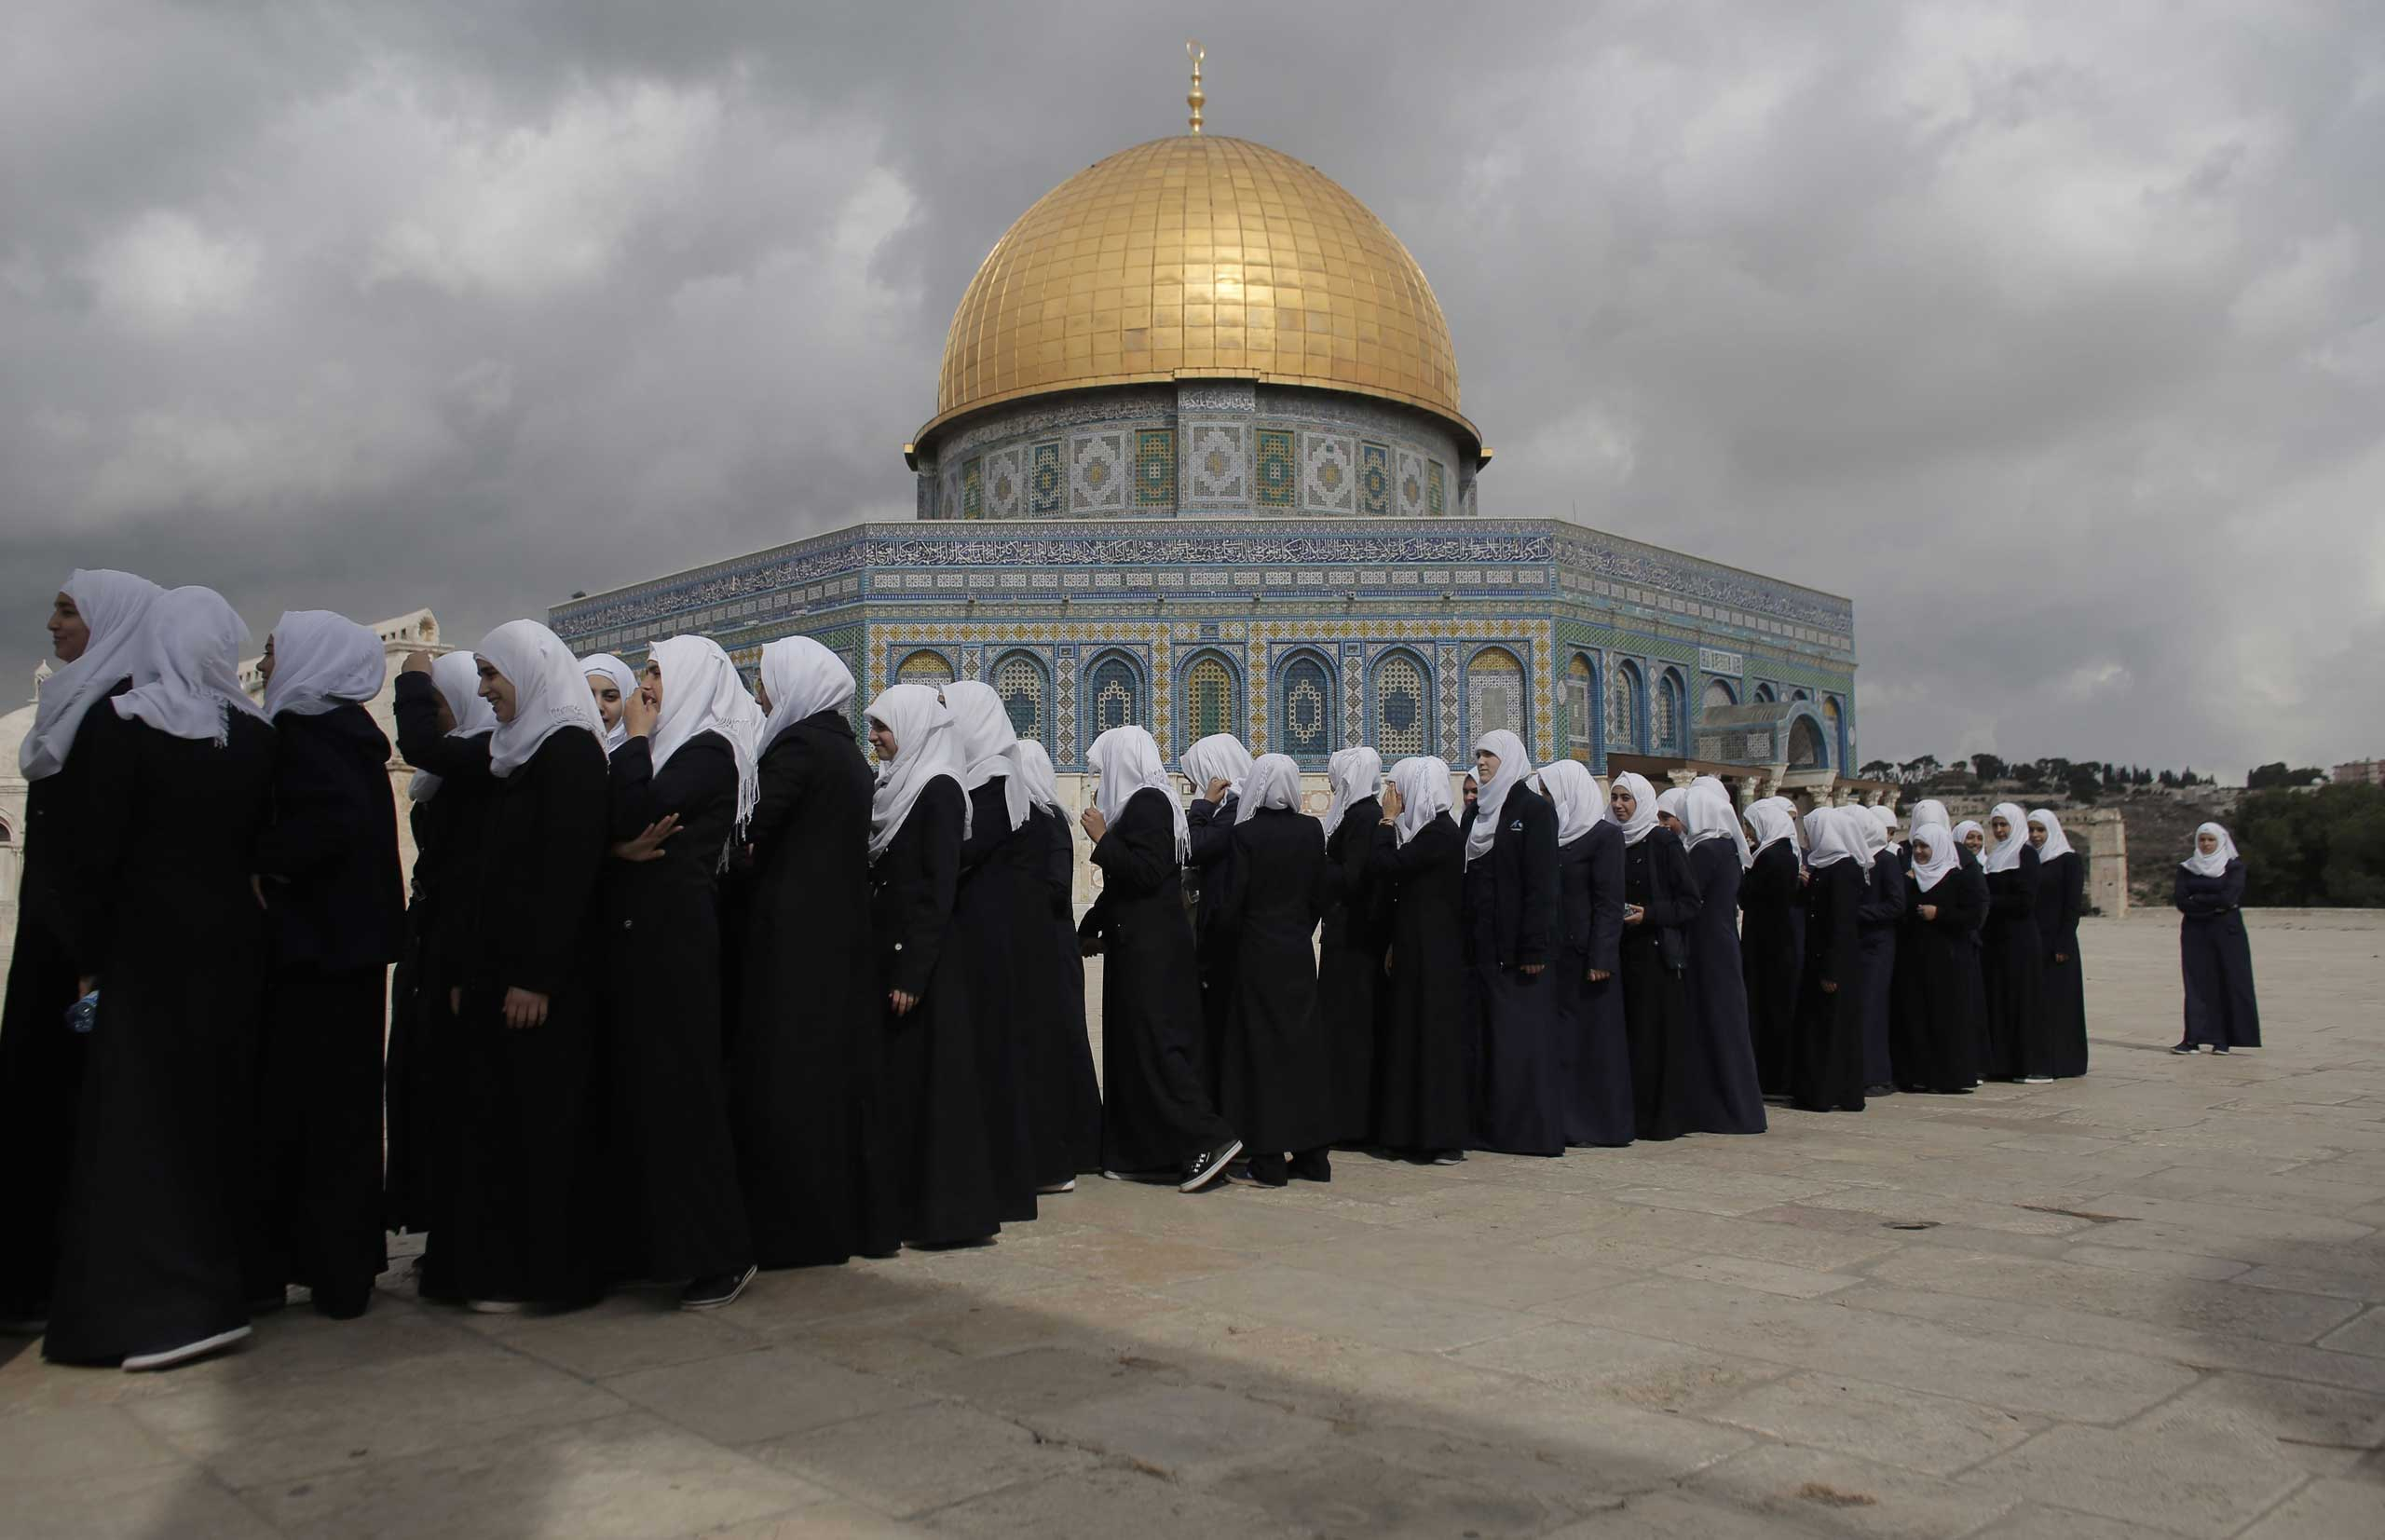 Palestinian school girls walk in line past the Dome of the Rock at the Al-Aqsa mosque compound in Jerusalem's Old City. Israeli Prime Minister Benjamin Netanyahu scrambled to contain inflammatory rhetoric from his government over the holy site, which is sacred to both Muslims and Jews, at the heart of a wave of deadly Palestinian unrest. Oct. 27, 2015.